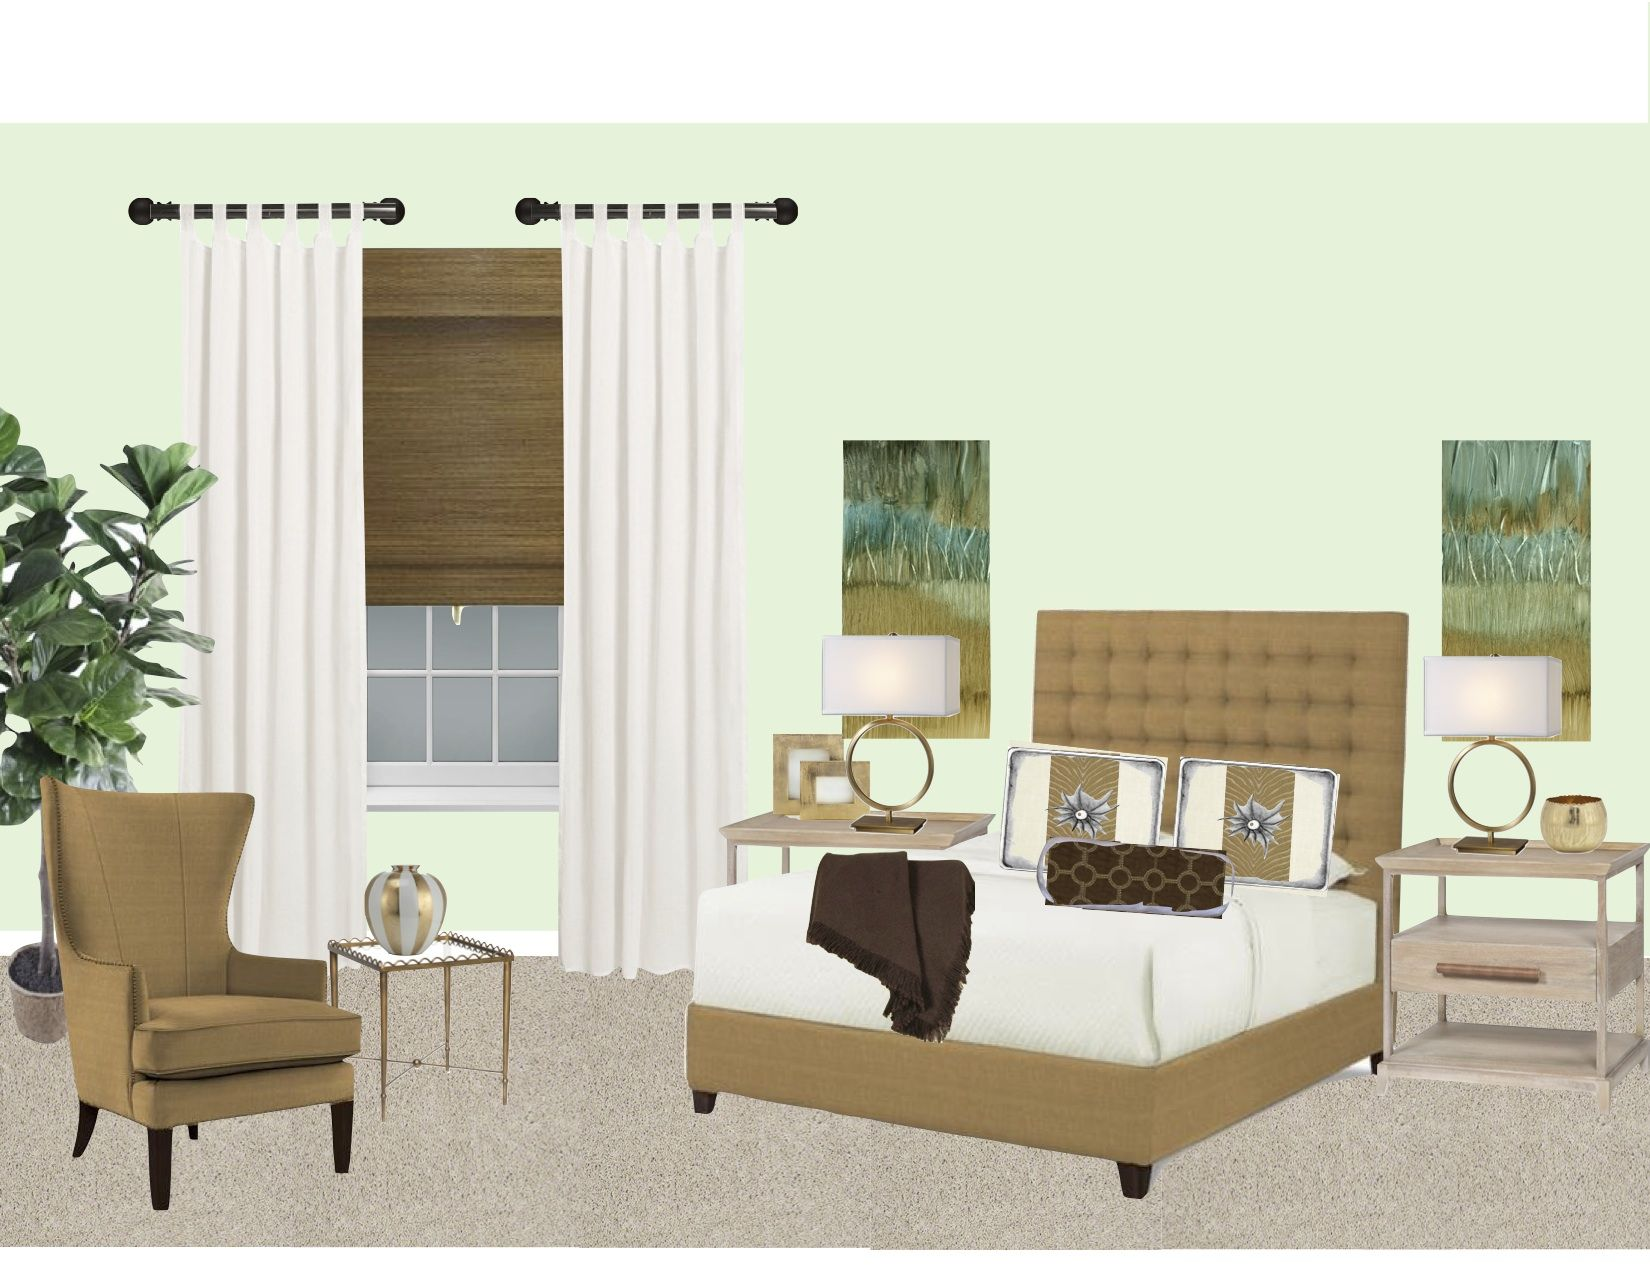 master bedroom concept 2 variation color selection of 10341 | b3dbffc635b161164c02f7823e16aa67